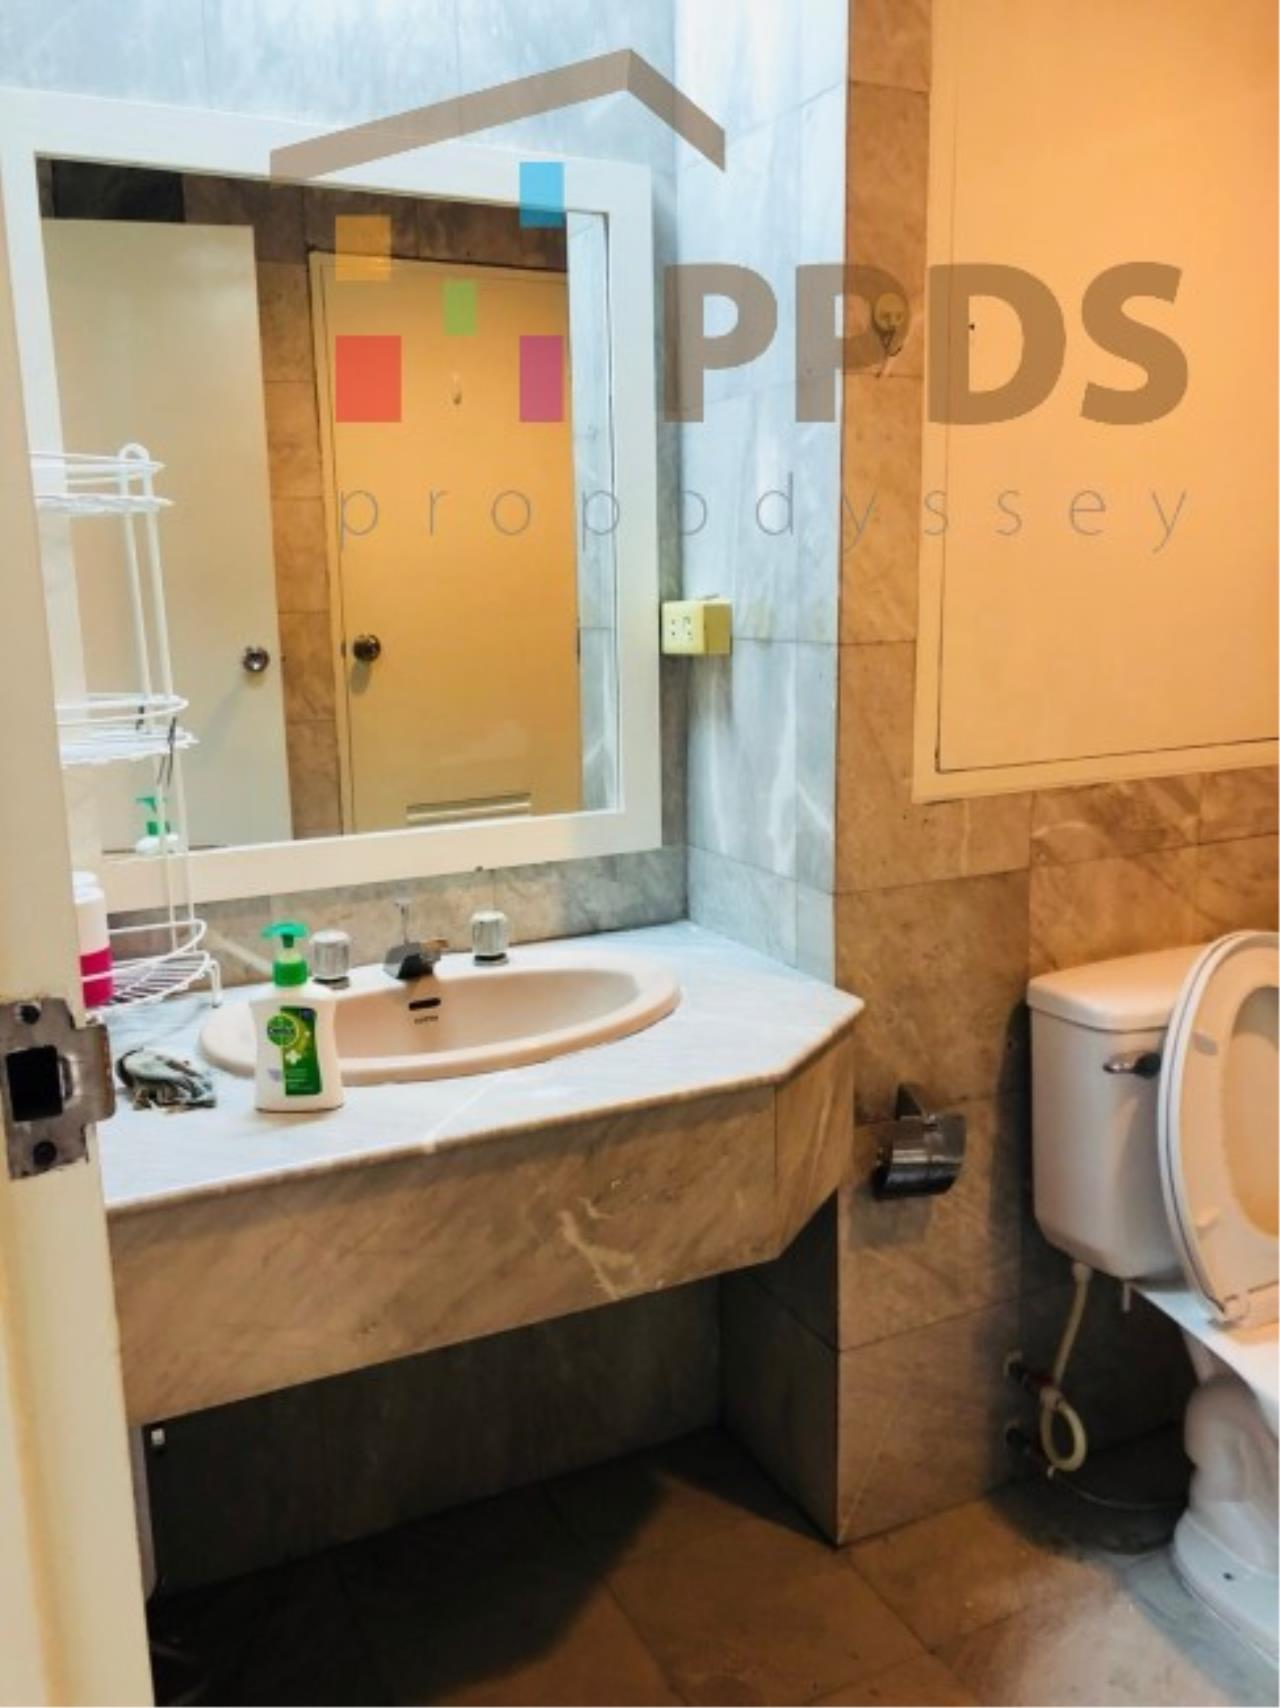 Propodyssey Agency's Sale 2 beds condo at Kiarti Thanee City Mansion Sukhumvit 31 only 6.78 MB 9